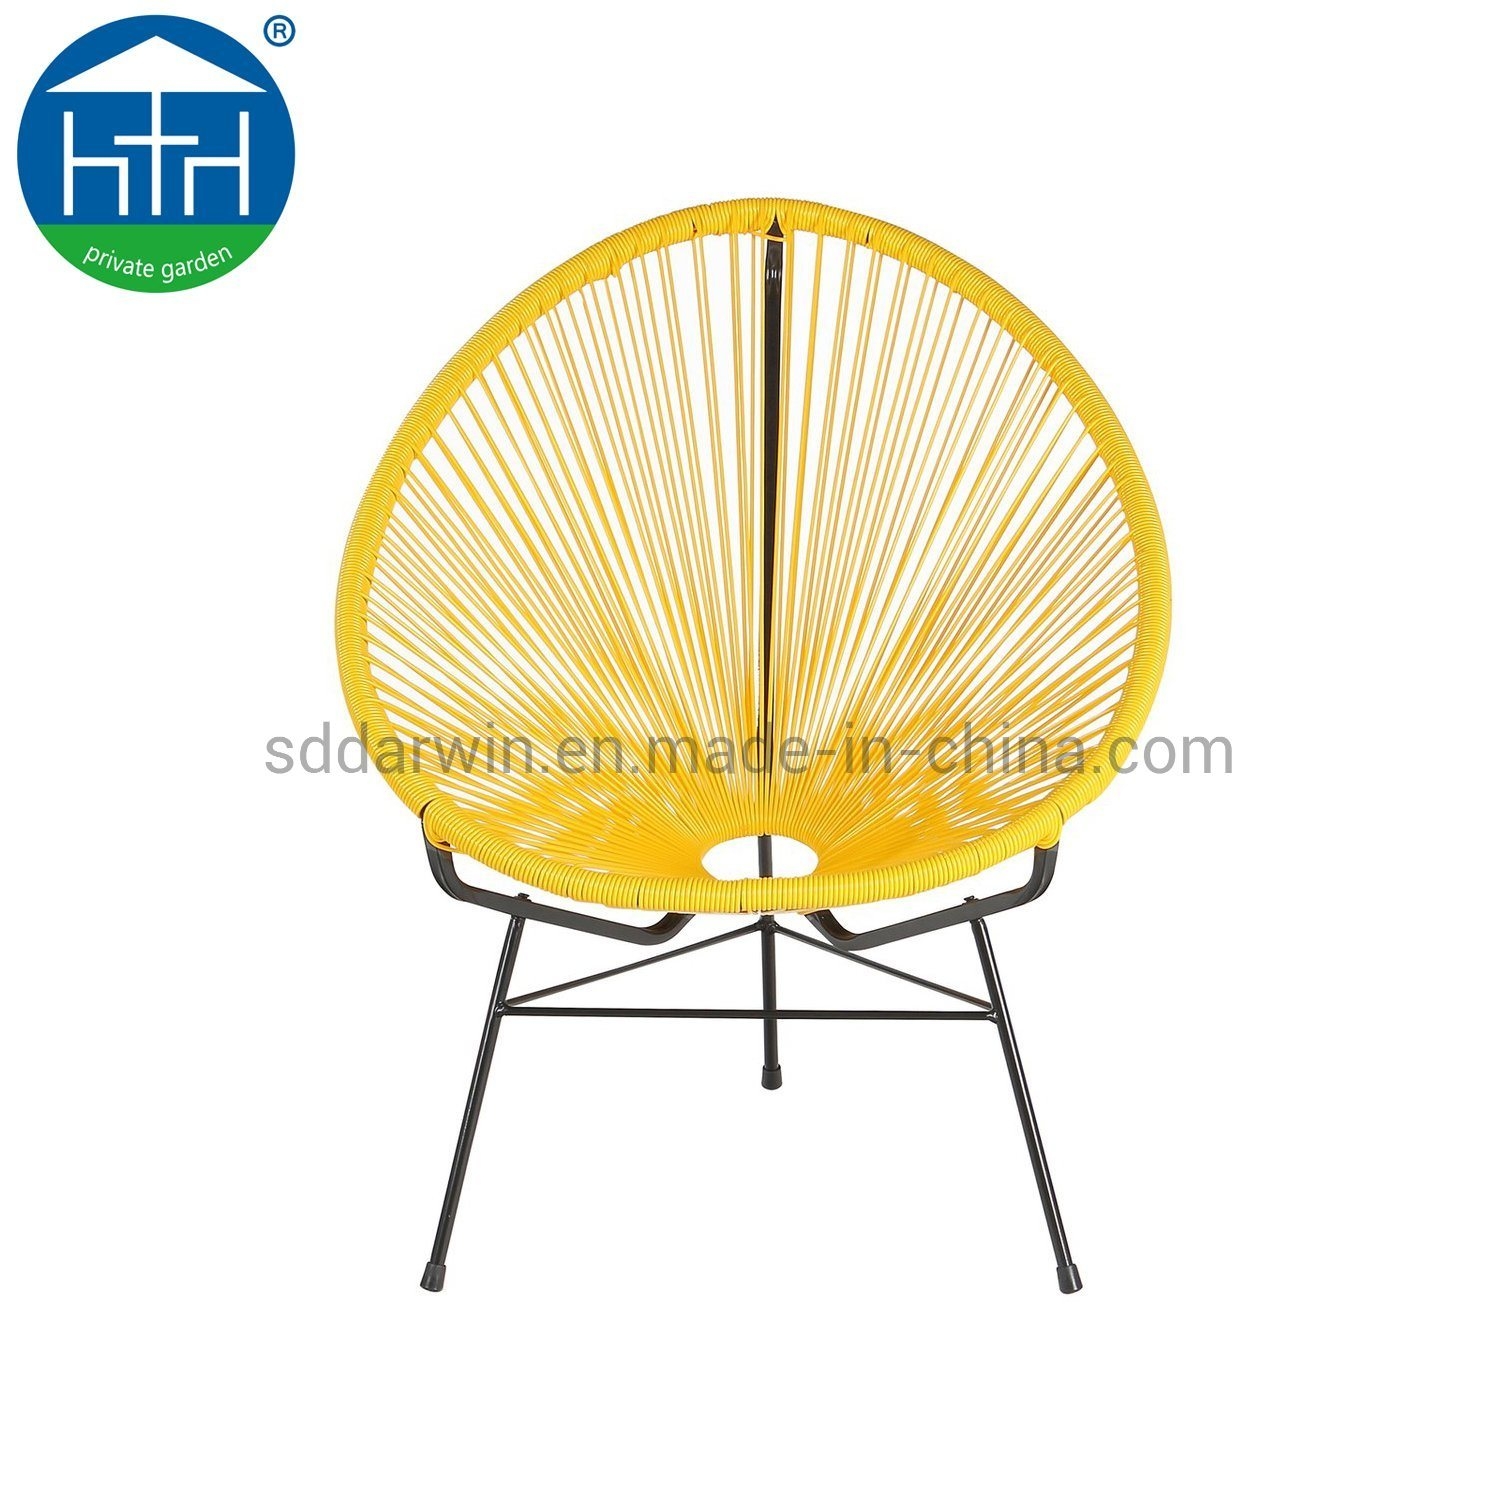 Phenomenal China Cheap Acapulco Chairs Garden Leisure Rattan Wicker Camellatalisay Diy Chair Ideas Camellatalisaycom